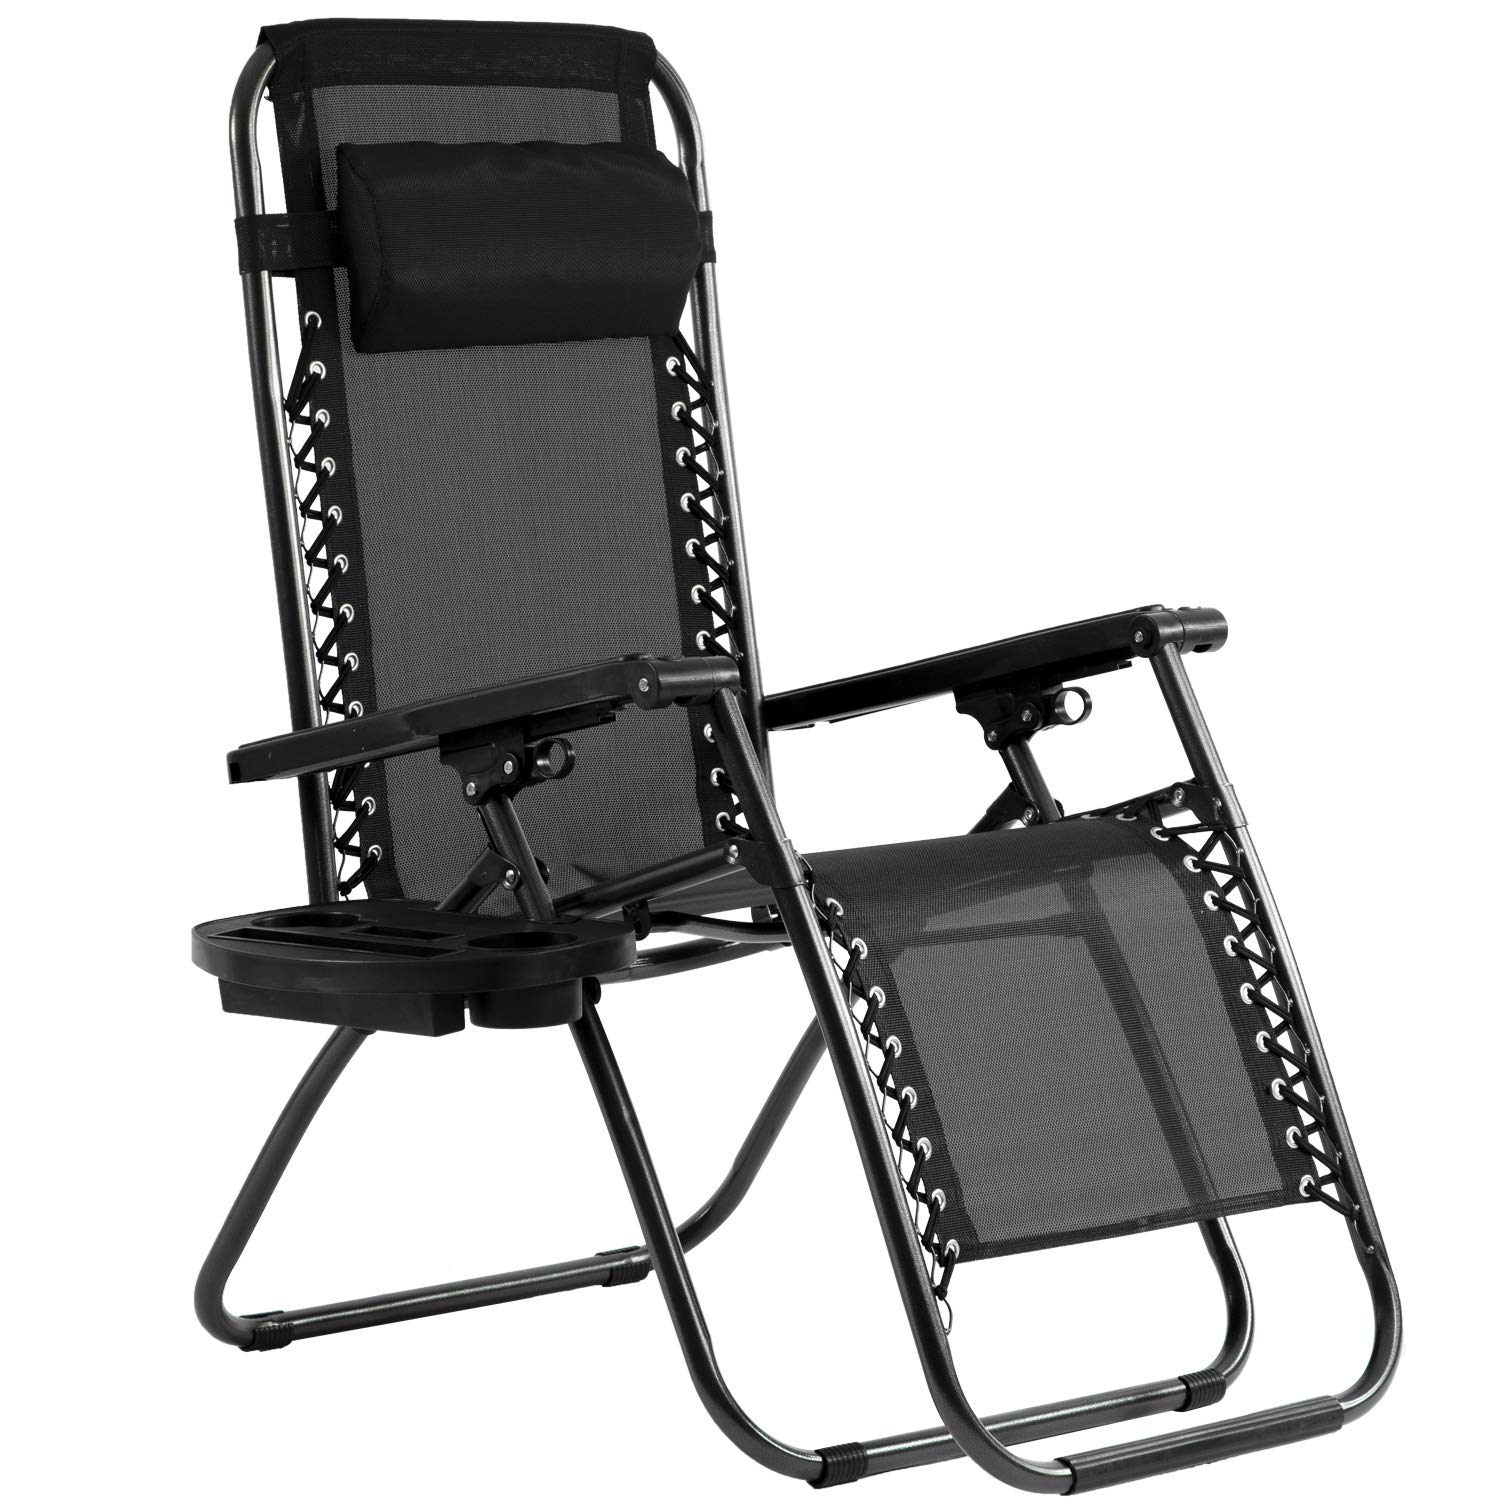 BestMassage Zero Gravity Lounge Patio Chairs with with Canopy Cup Holder, Black by BestMassage